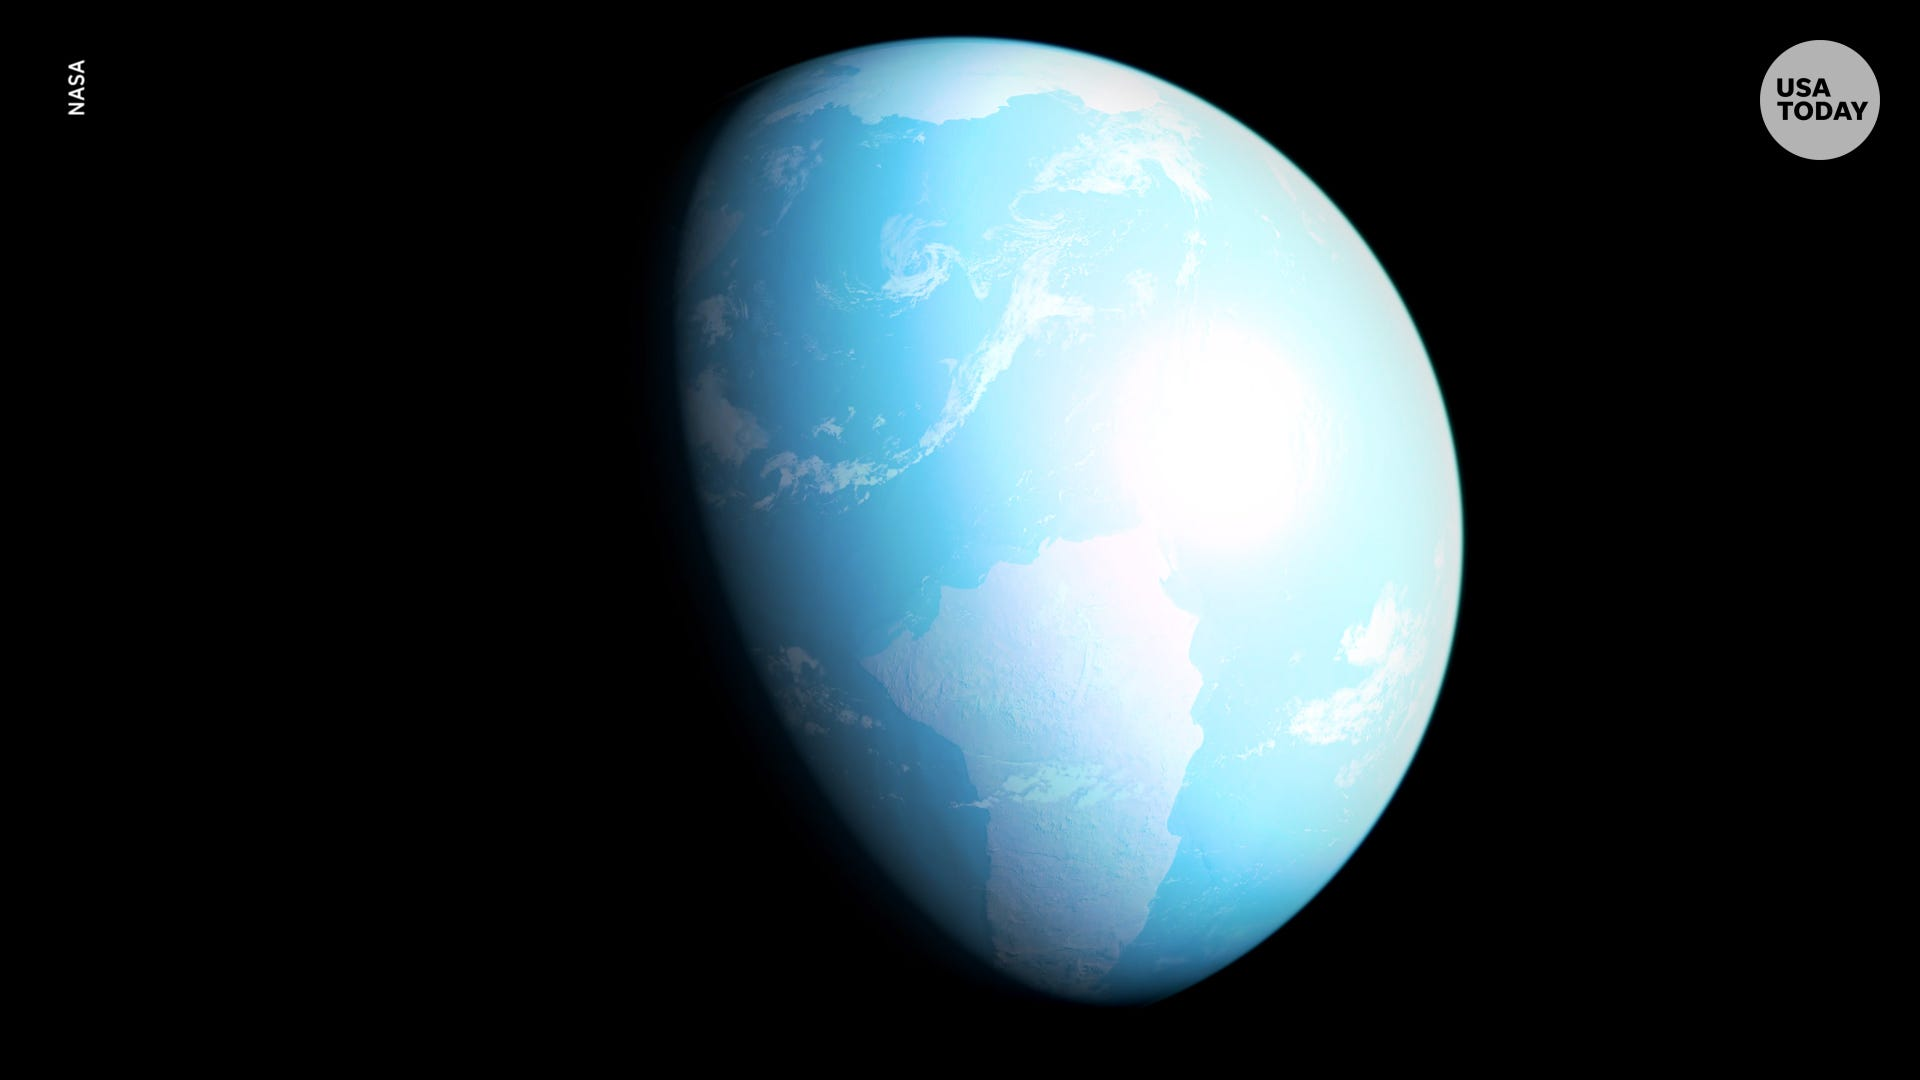 Super-earth planet discovered is only 31 light-years away